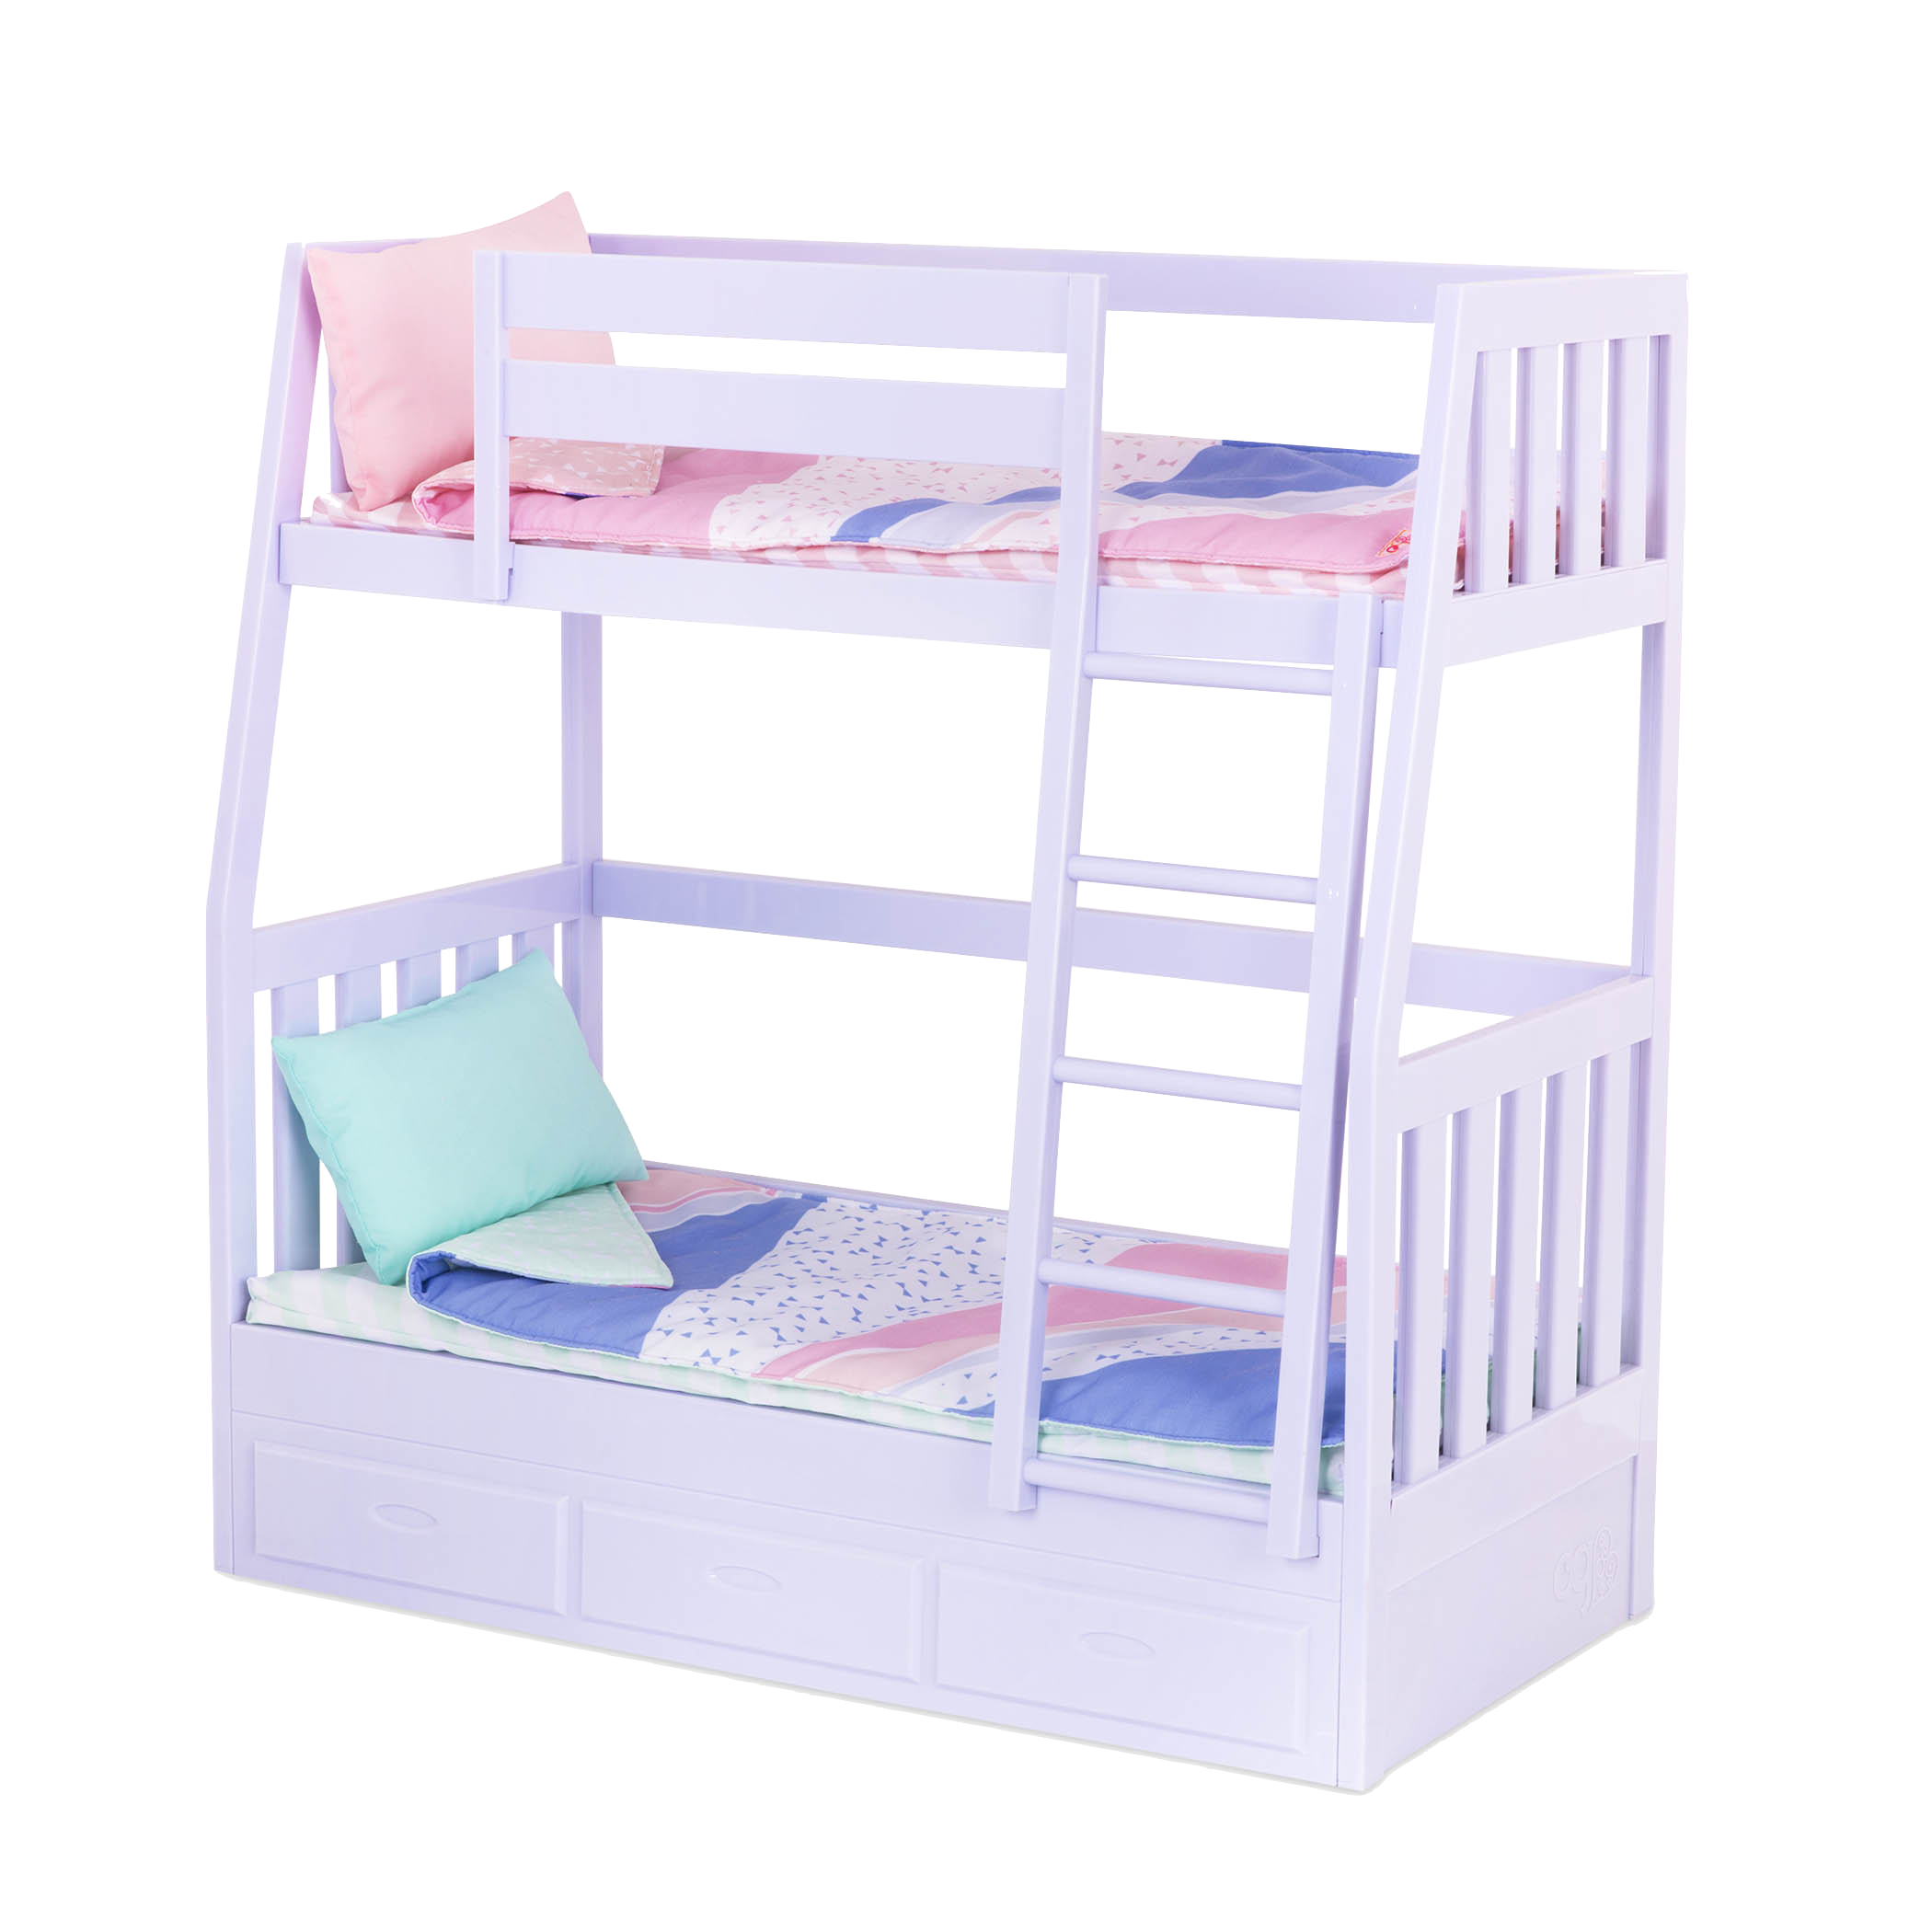 Dream Bunks - Doll Bunk Beds for 18-inch Dolls